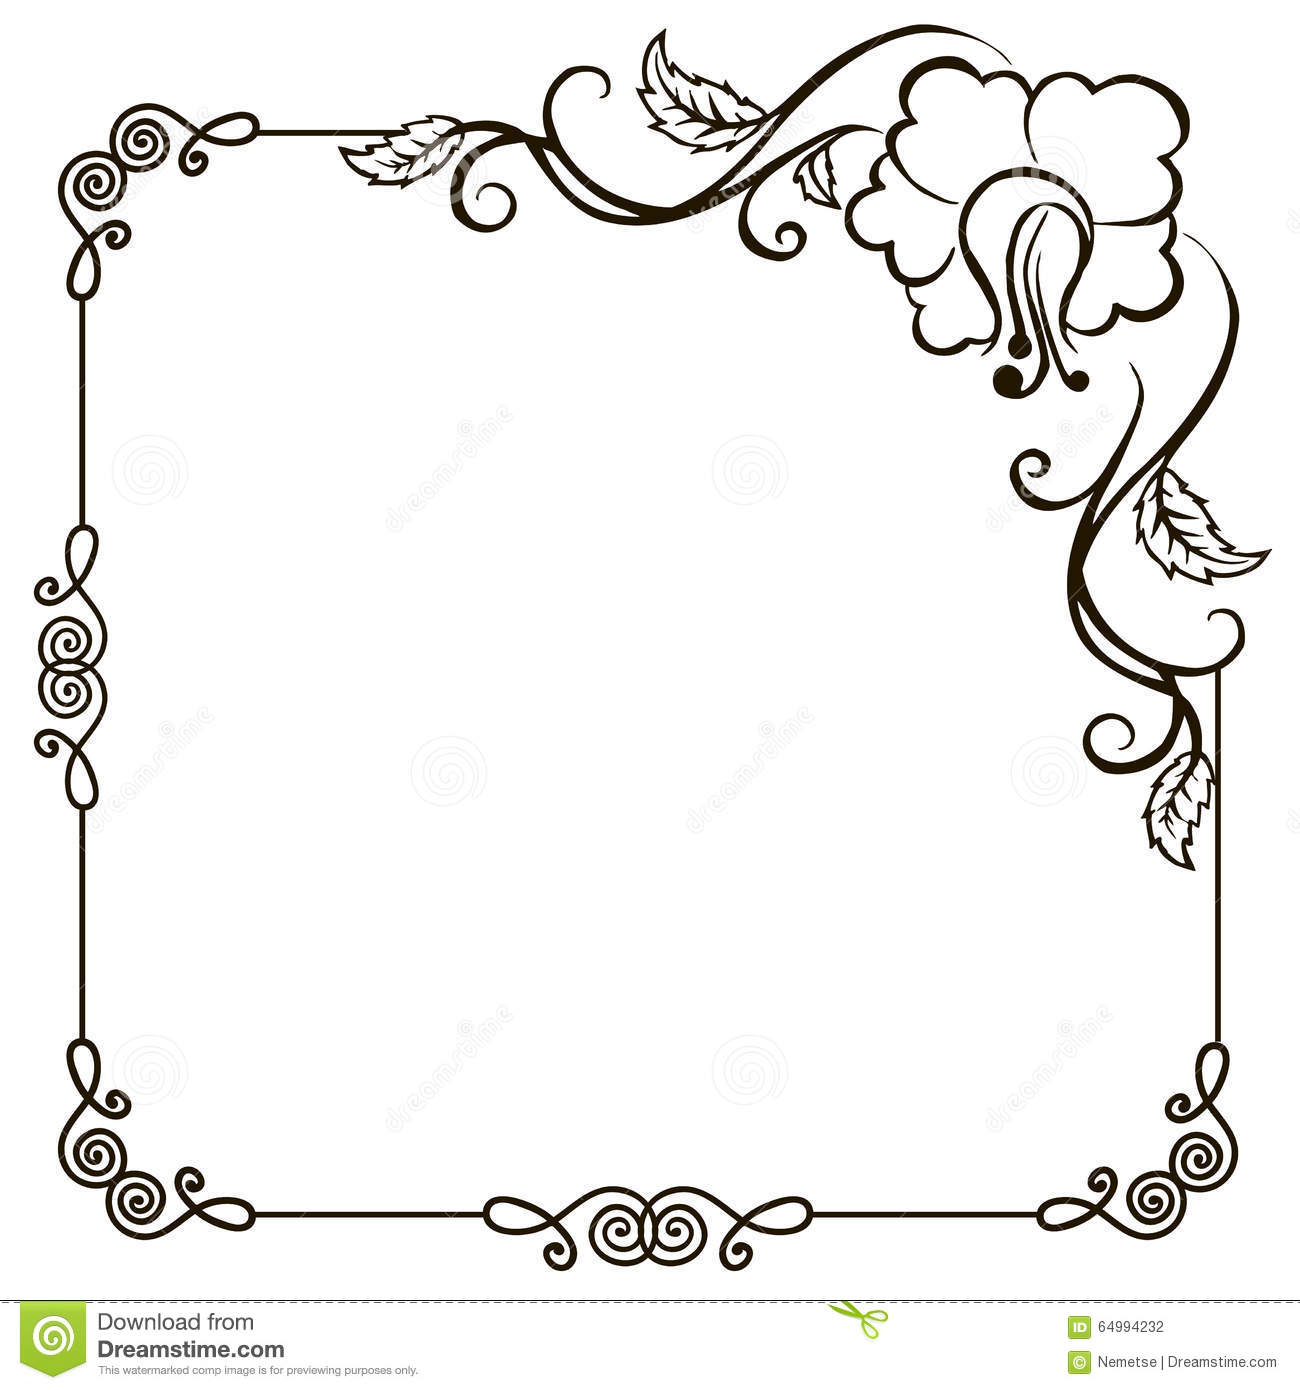 Vintage Floral Frame Stock Vector Illustration Of Abstract